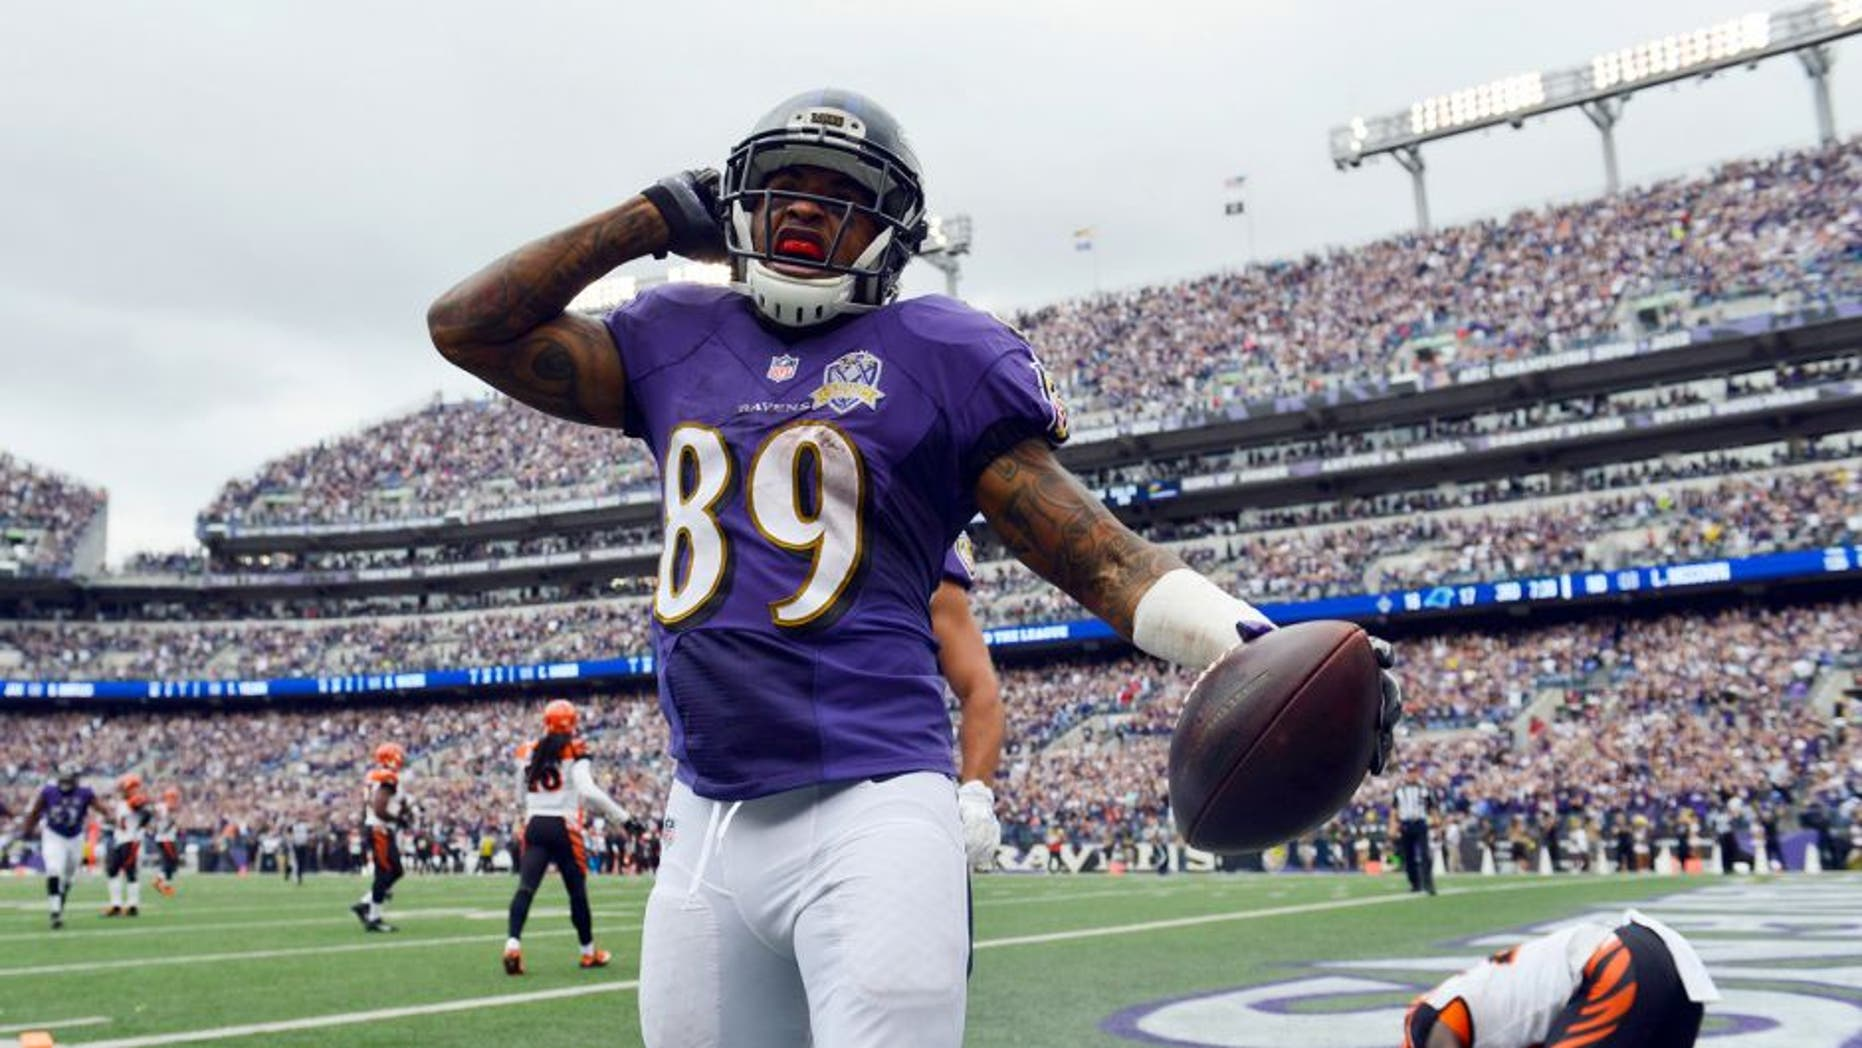 Sep 27, 2015; Baltimore, MD, USA; ) Baltimore Ravens wide receiver Steve Smith (89) celebrates after hits touchdown during the third quarter against the Cincinnati Bengals at M&T Bank Stadium. Mandatory Credit: Tommy Gilligan-USA TODAY Sports